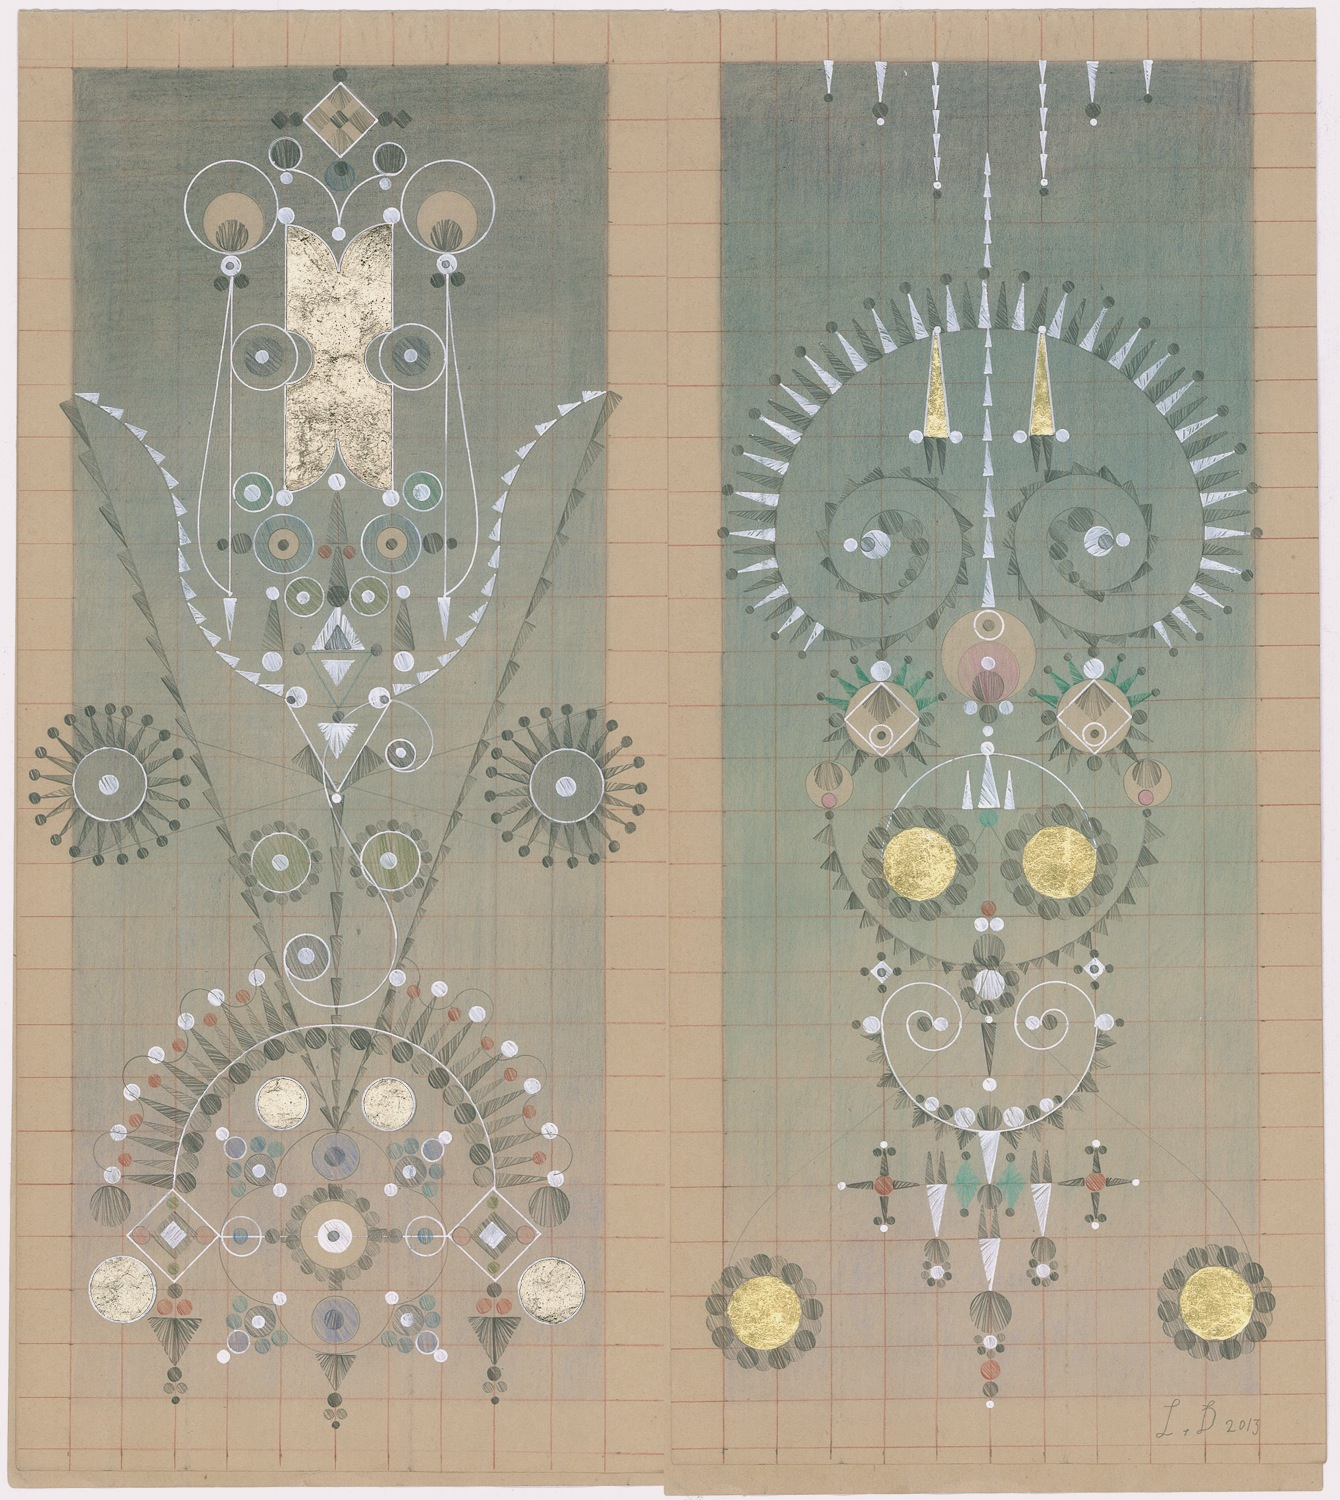 Constellation Symptom No. 17,Colored Pencil,Graphite, Gold Leaf on Antique Ledger Book Pages.13.5 x 12.25 inches